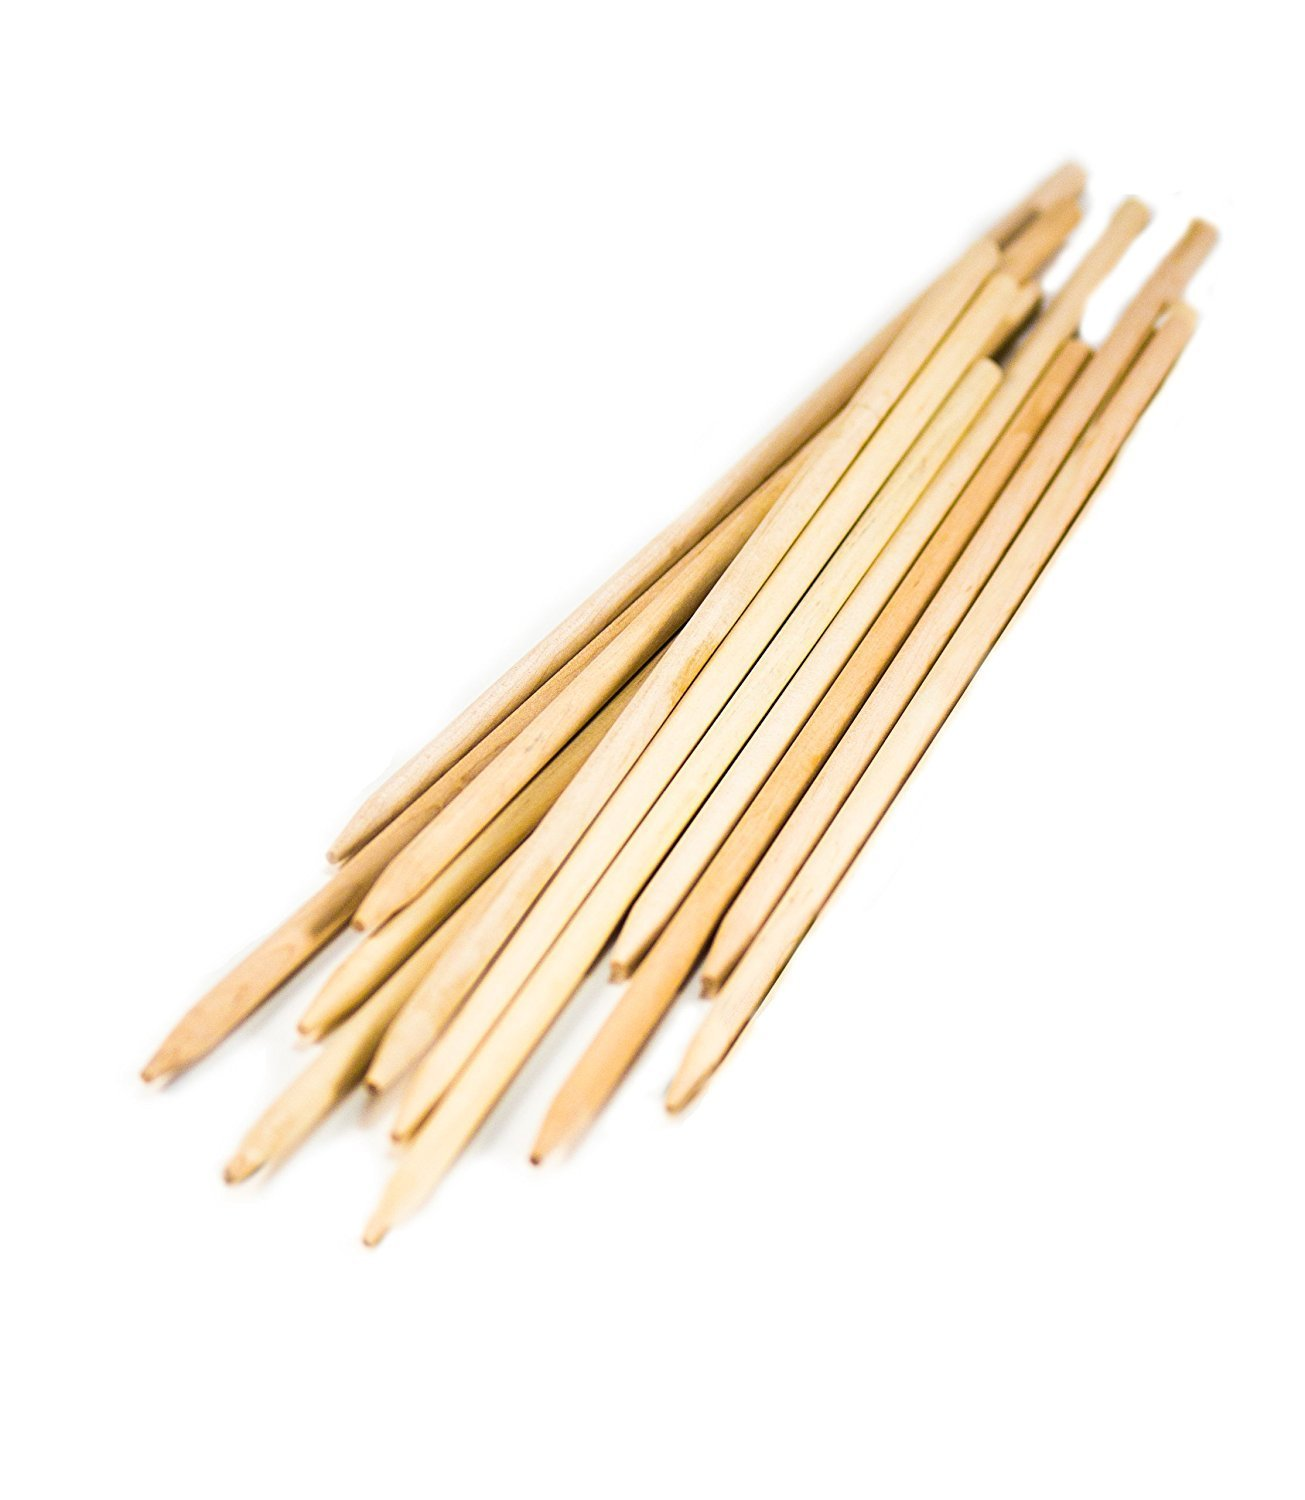 "Perfect Stix Wooden Semi Pointed Candy Apple / Corn Dog Sticks 5.5"" x 3/16"" (pack of 1000)"